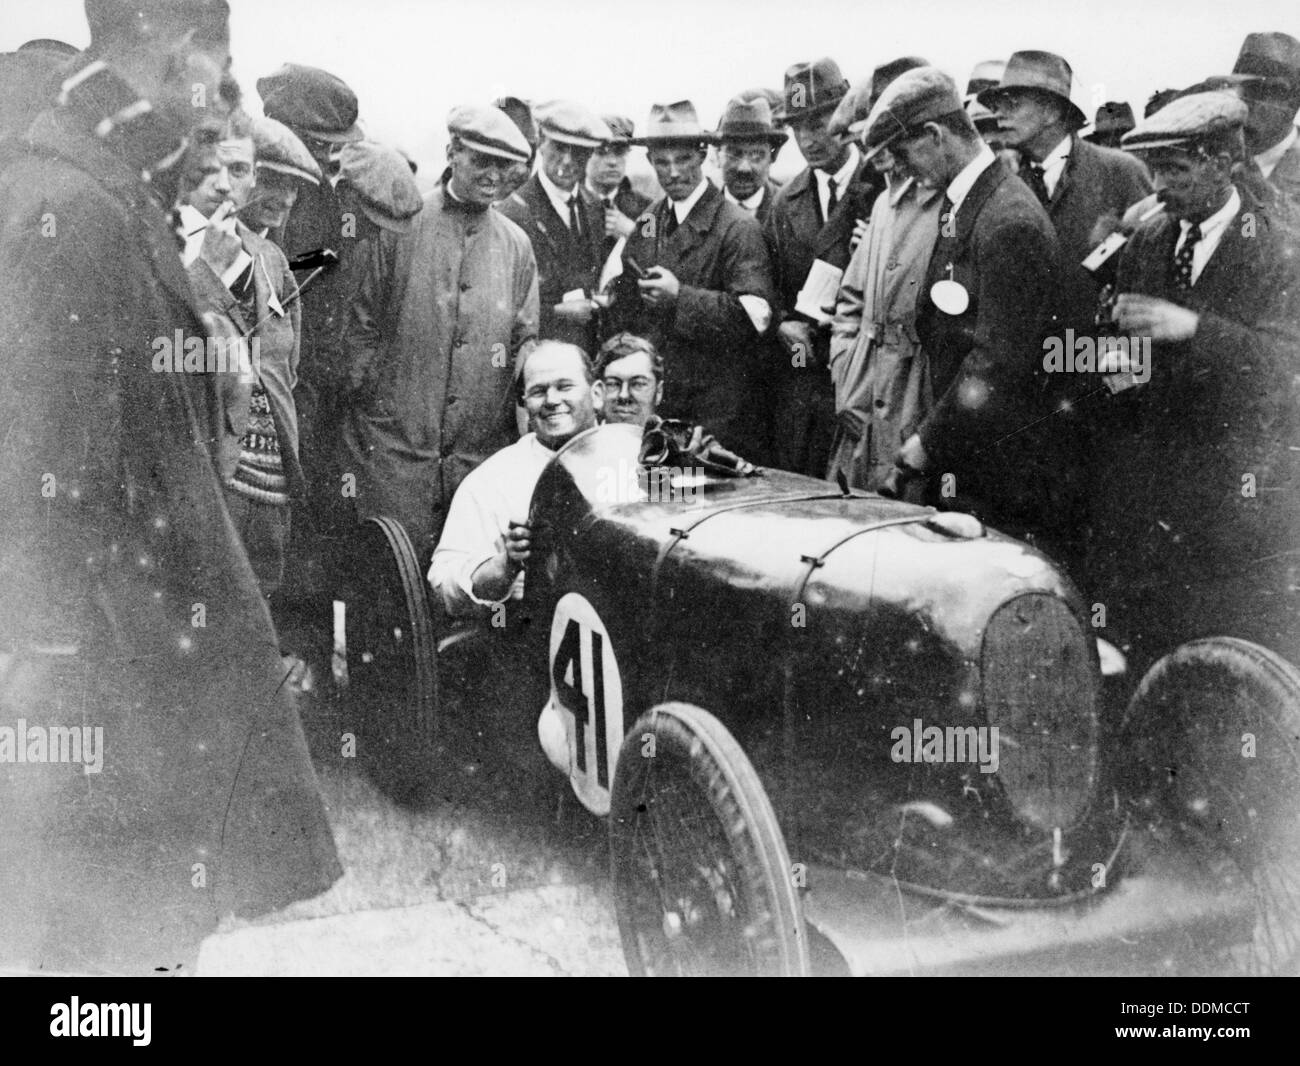 Gordon Taylor in a racing car surrounded by a crowd of men. - Stock Image